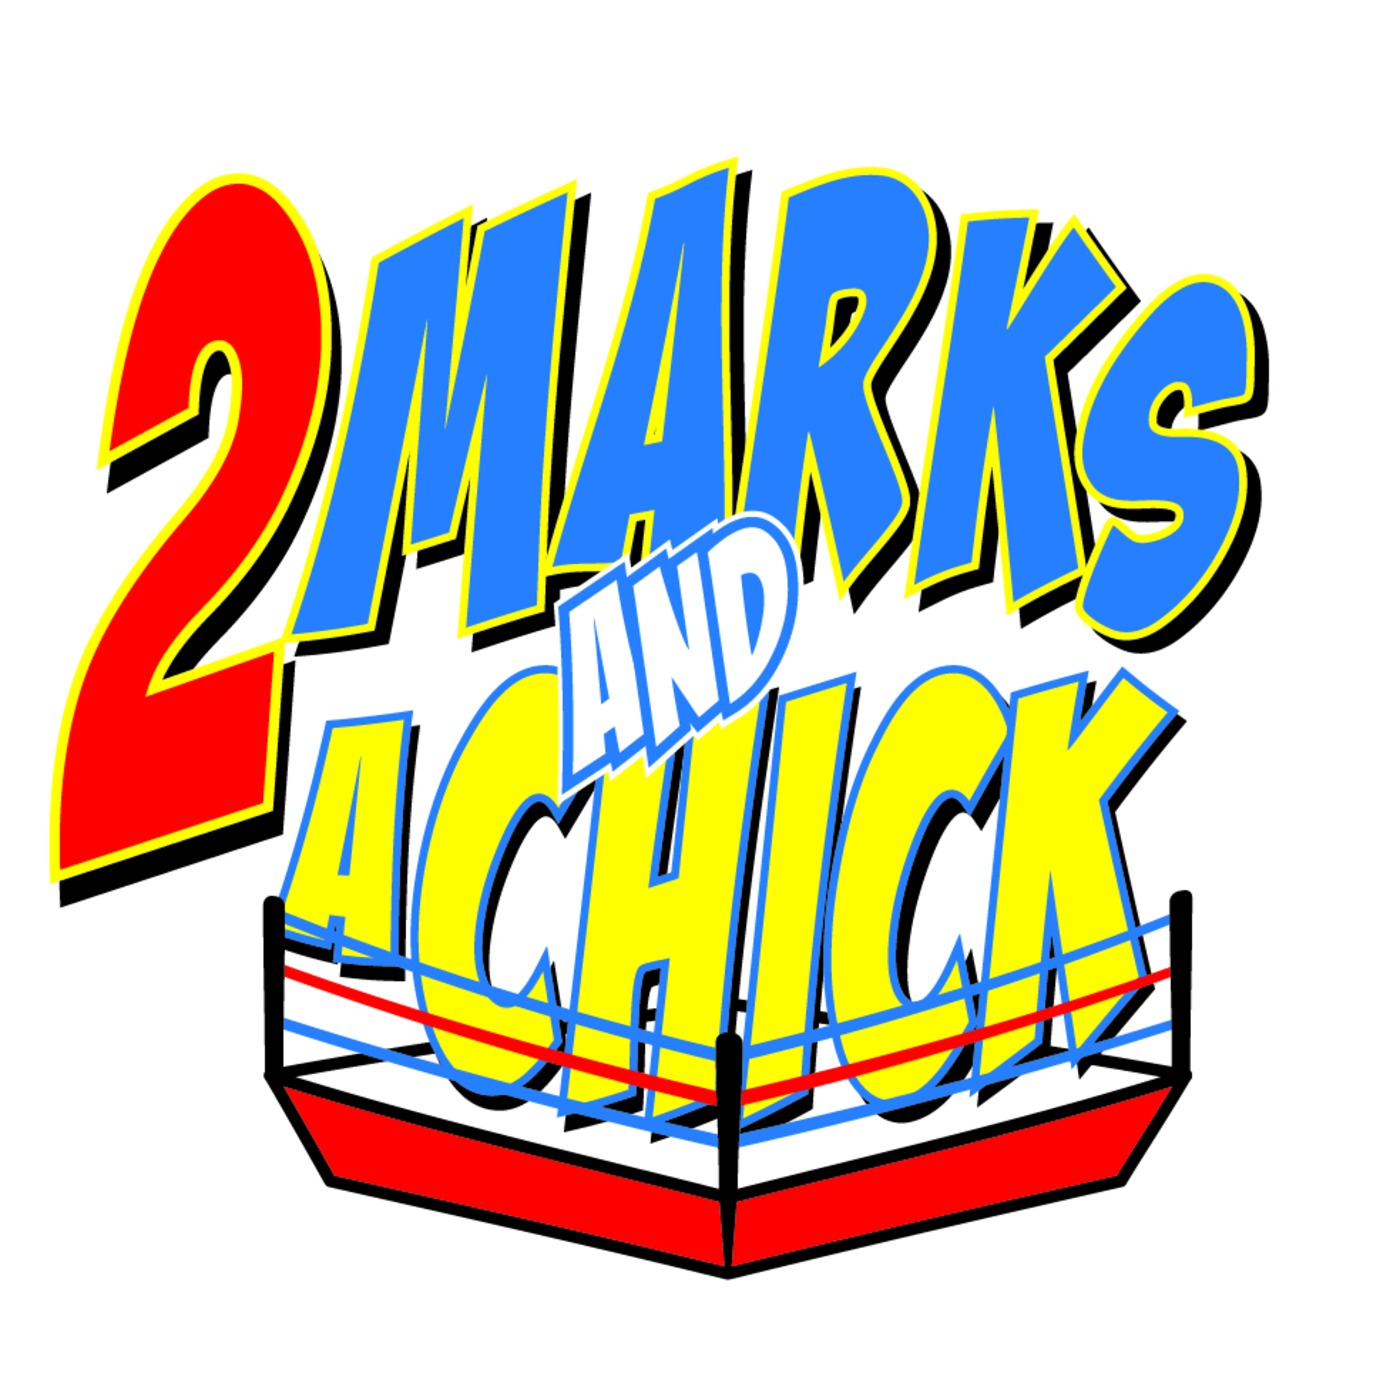 2 Marks and a Chick Podcast